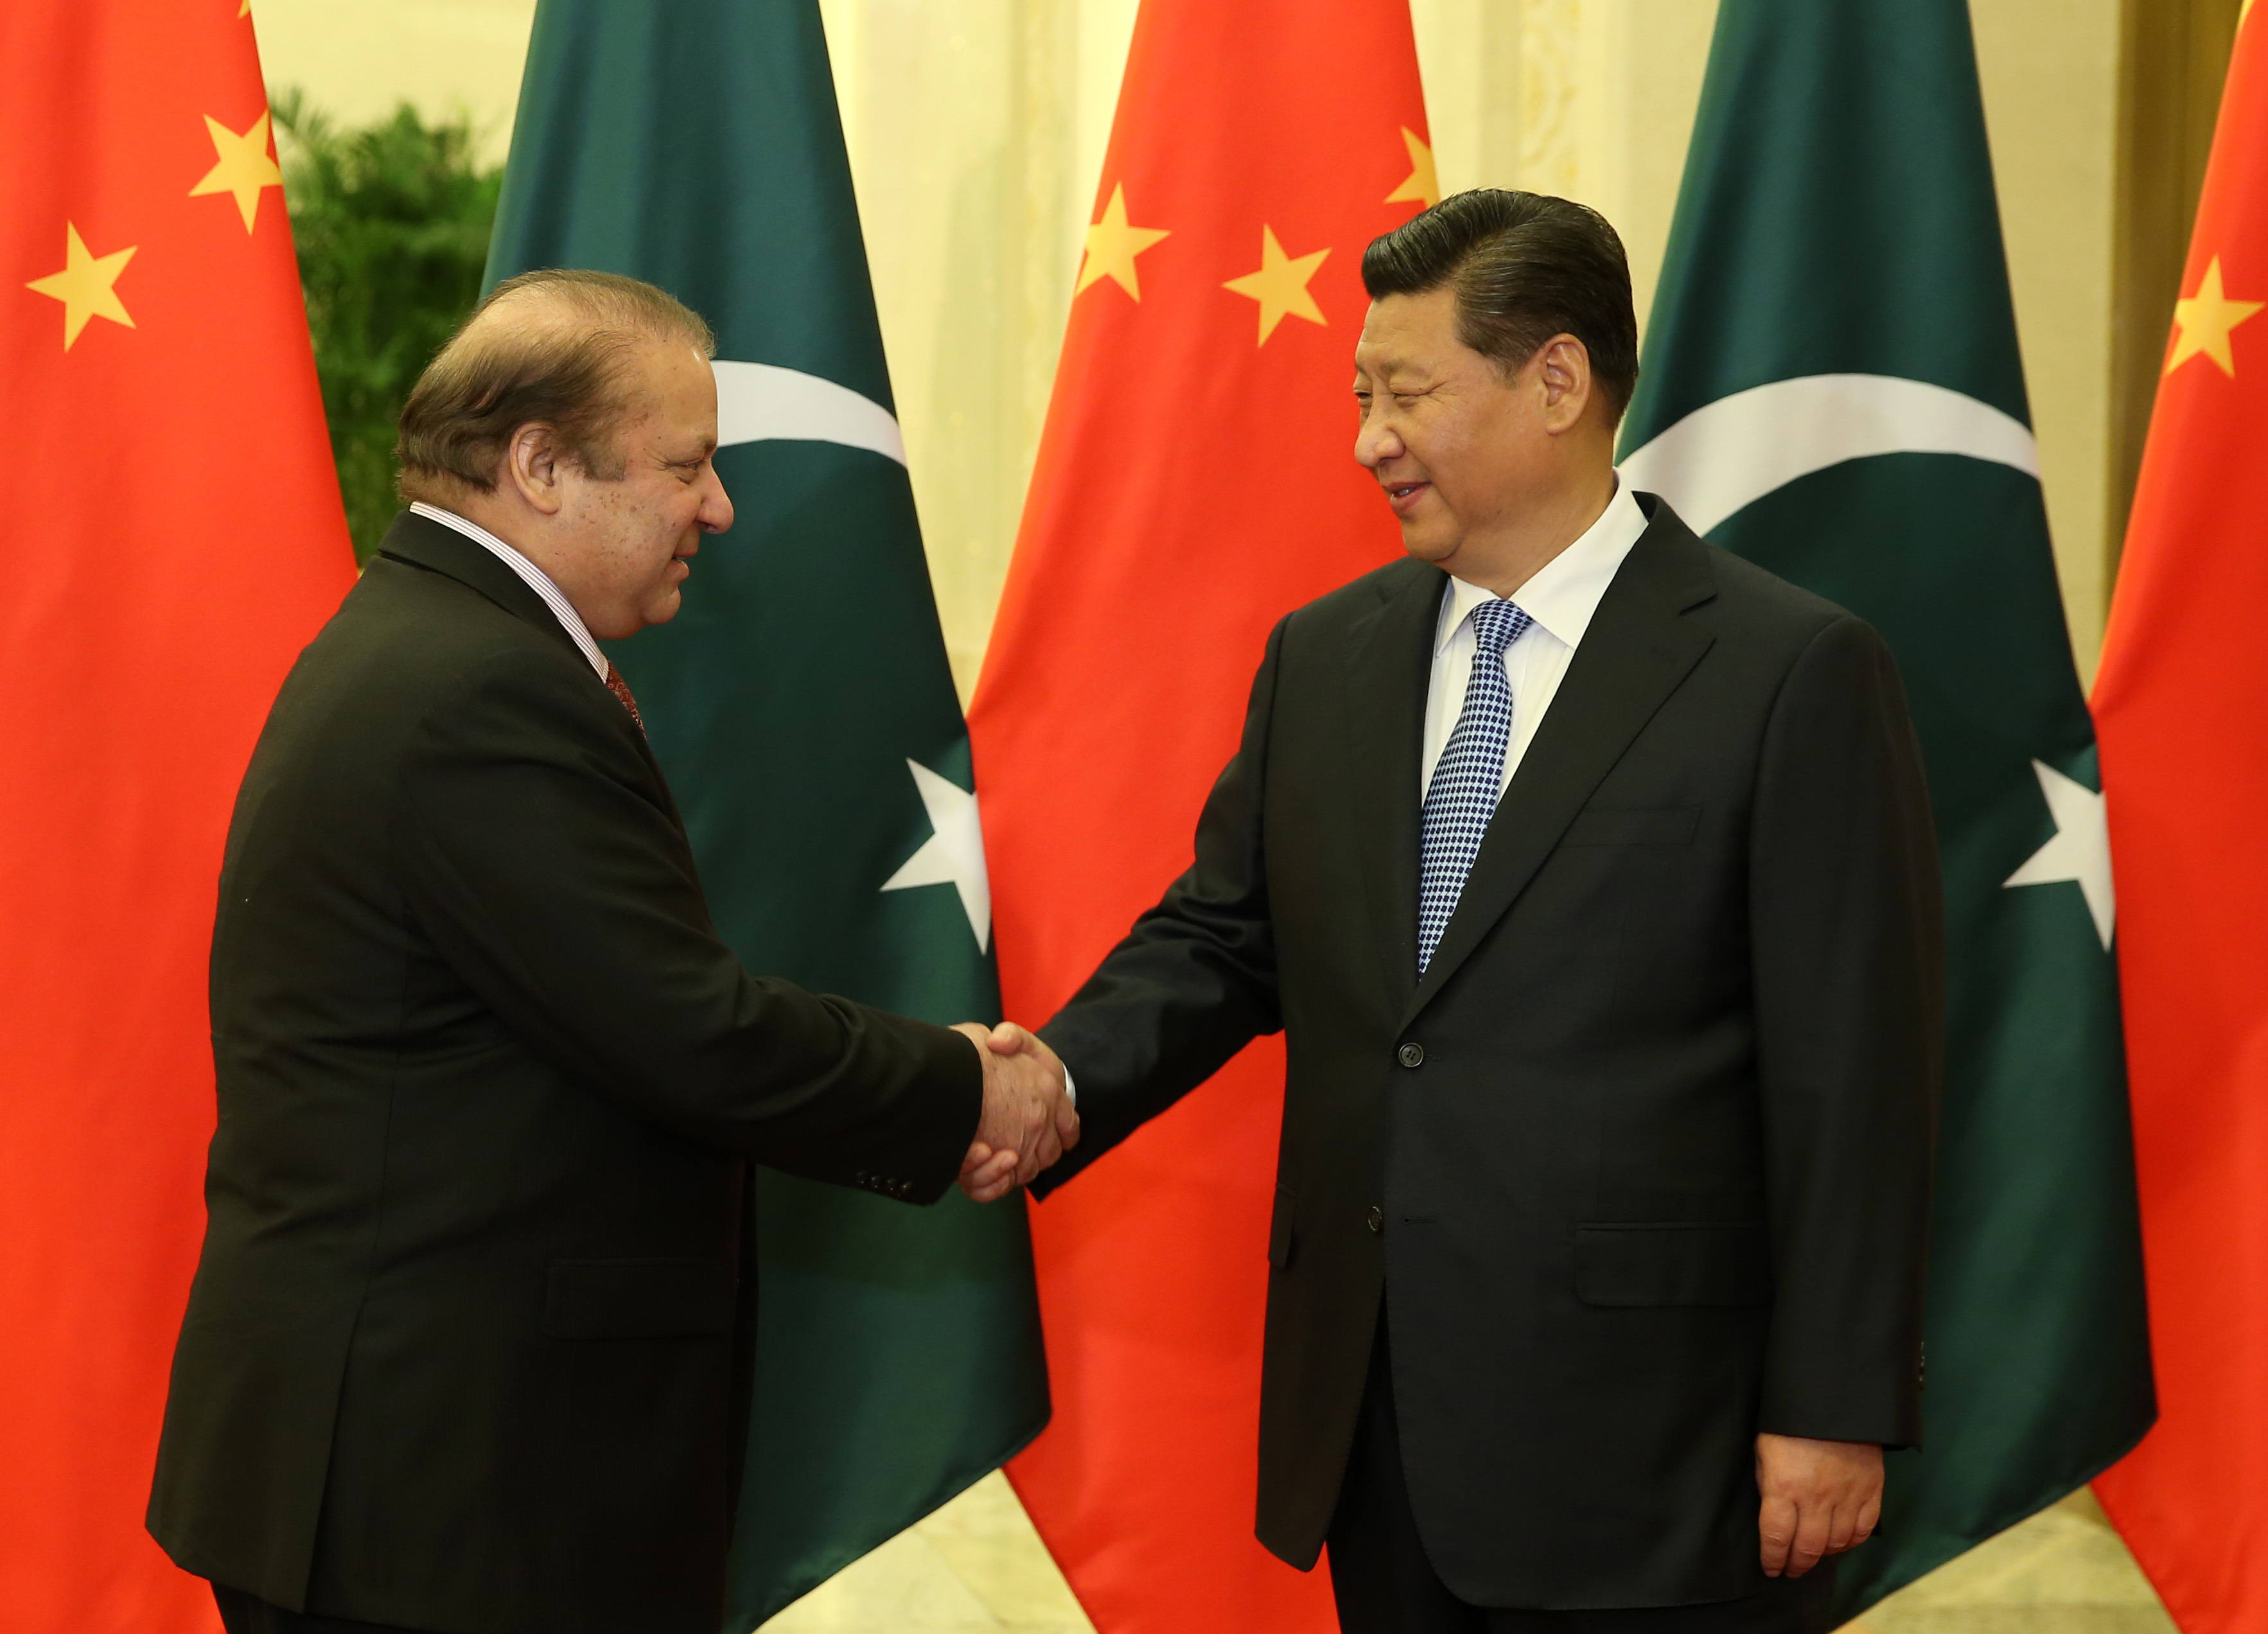 president xi assured islamabad of beijing s support if ties with arab world unravelled photo south asian daily